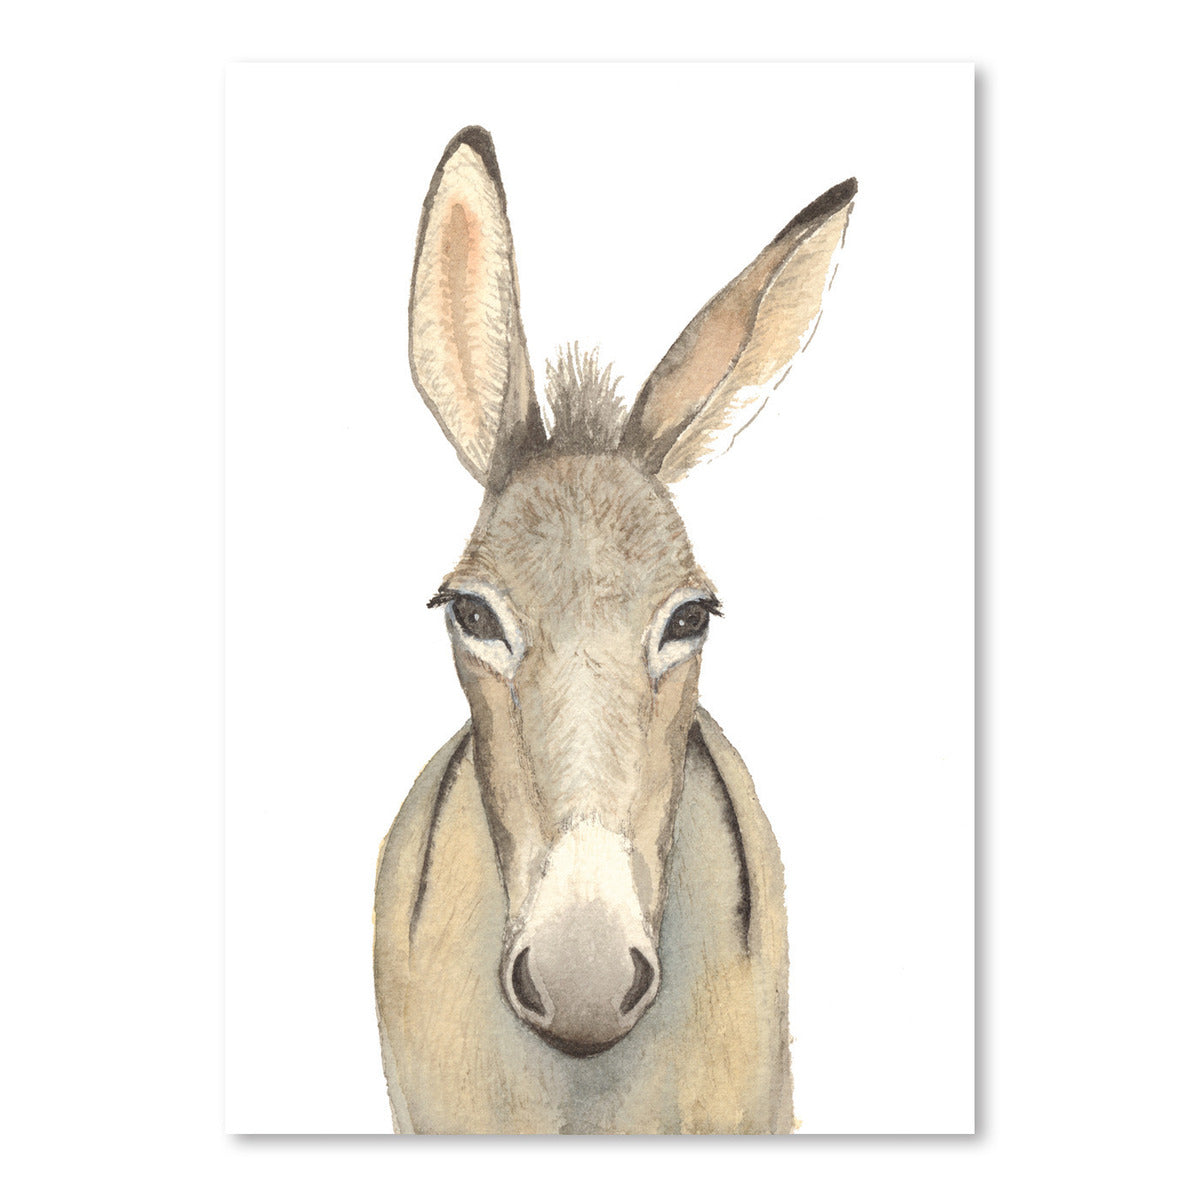 Donkey by Cami Monet - Art Print - Americanflat